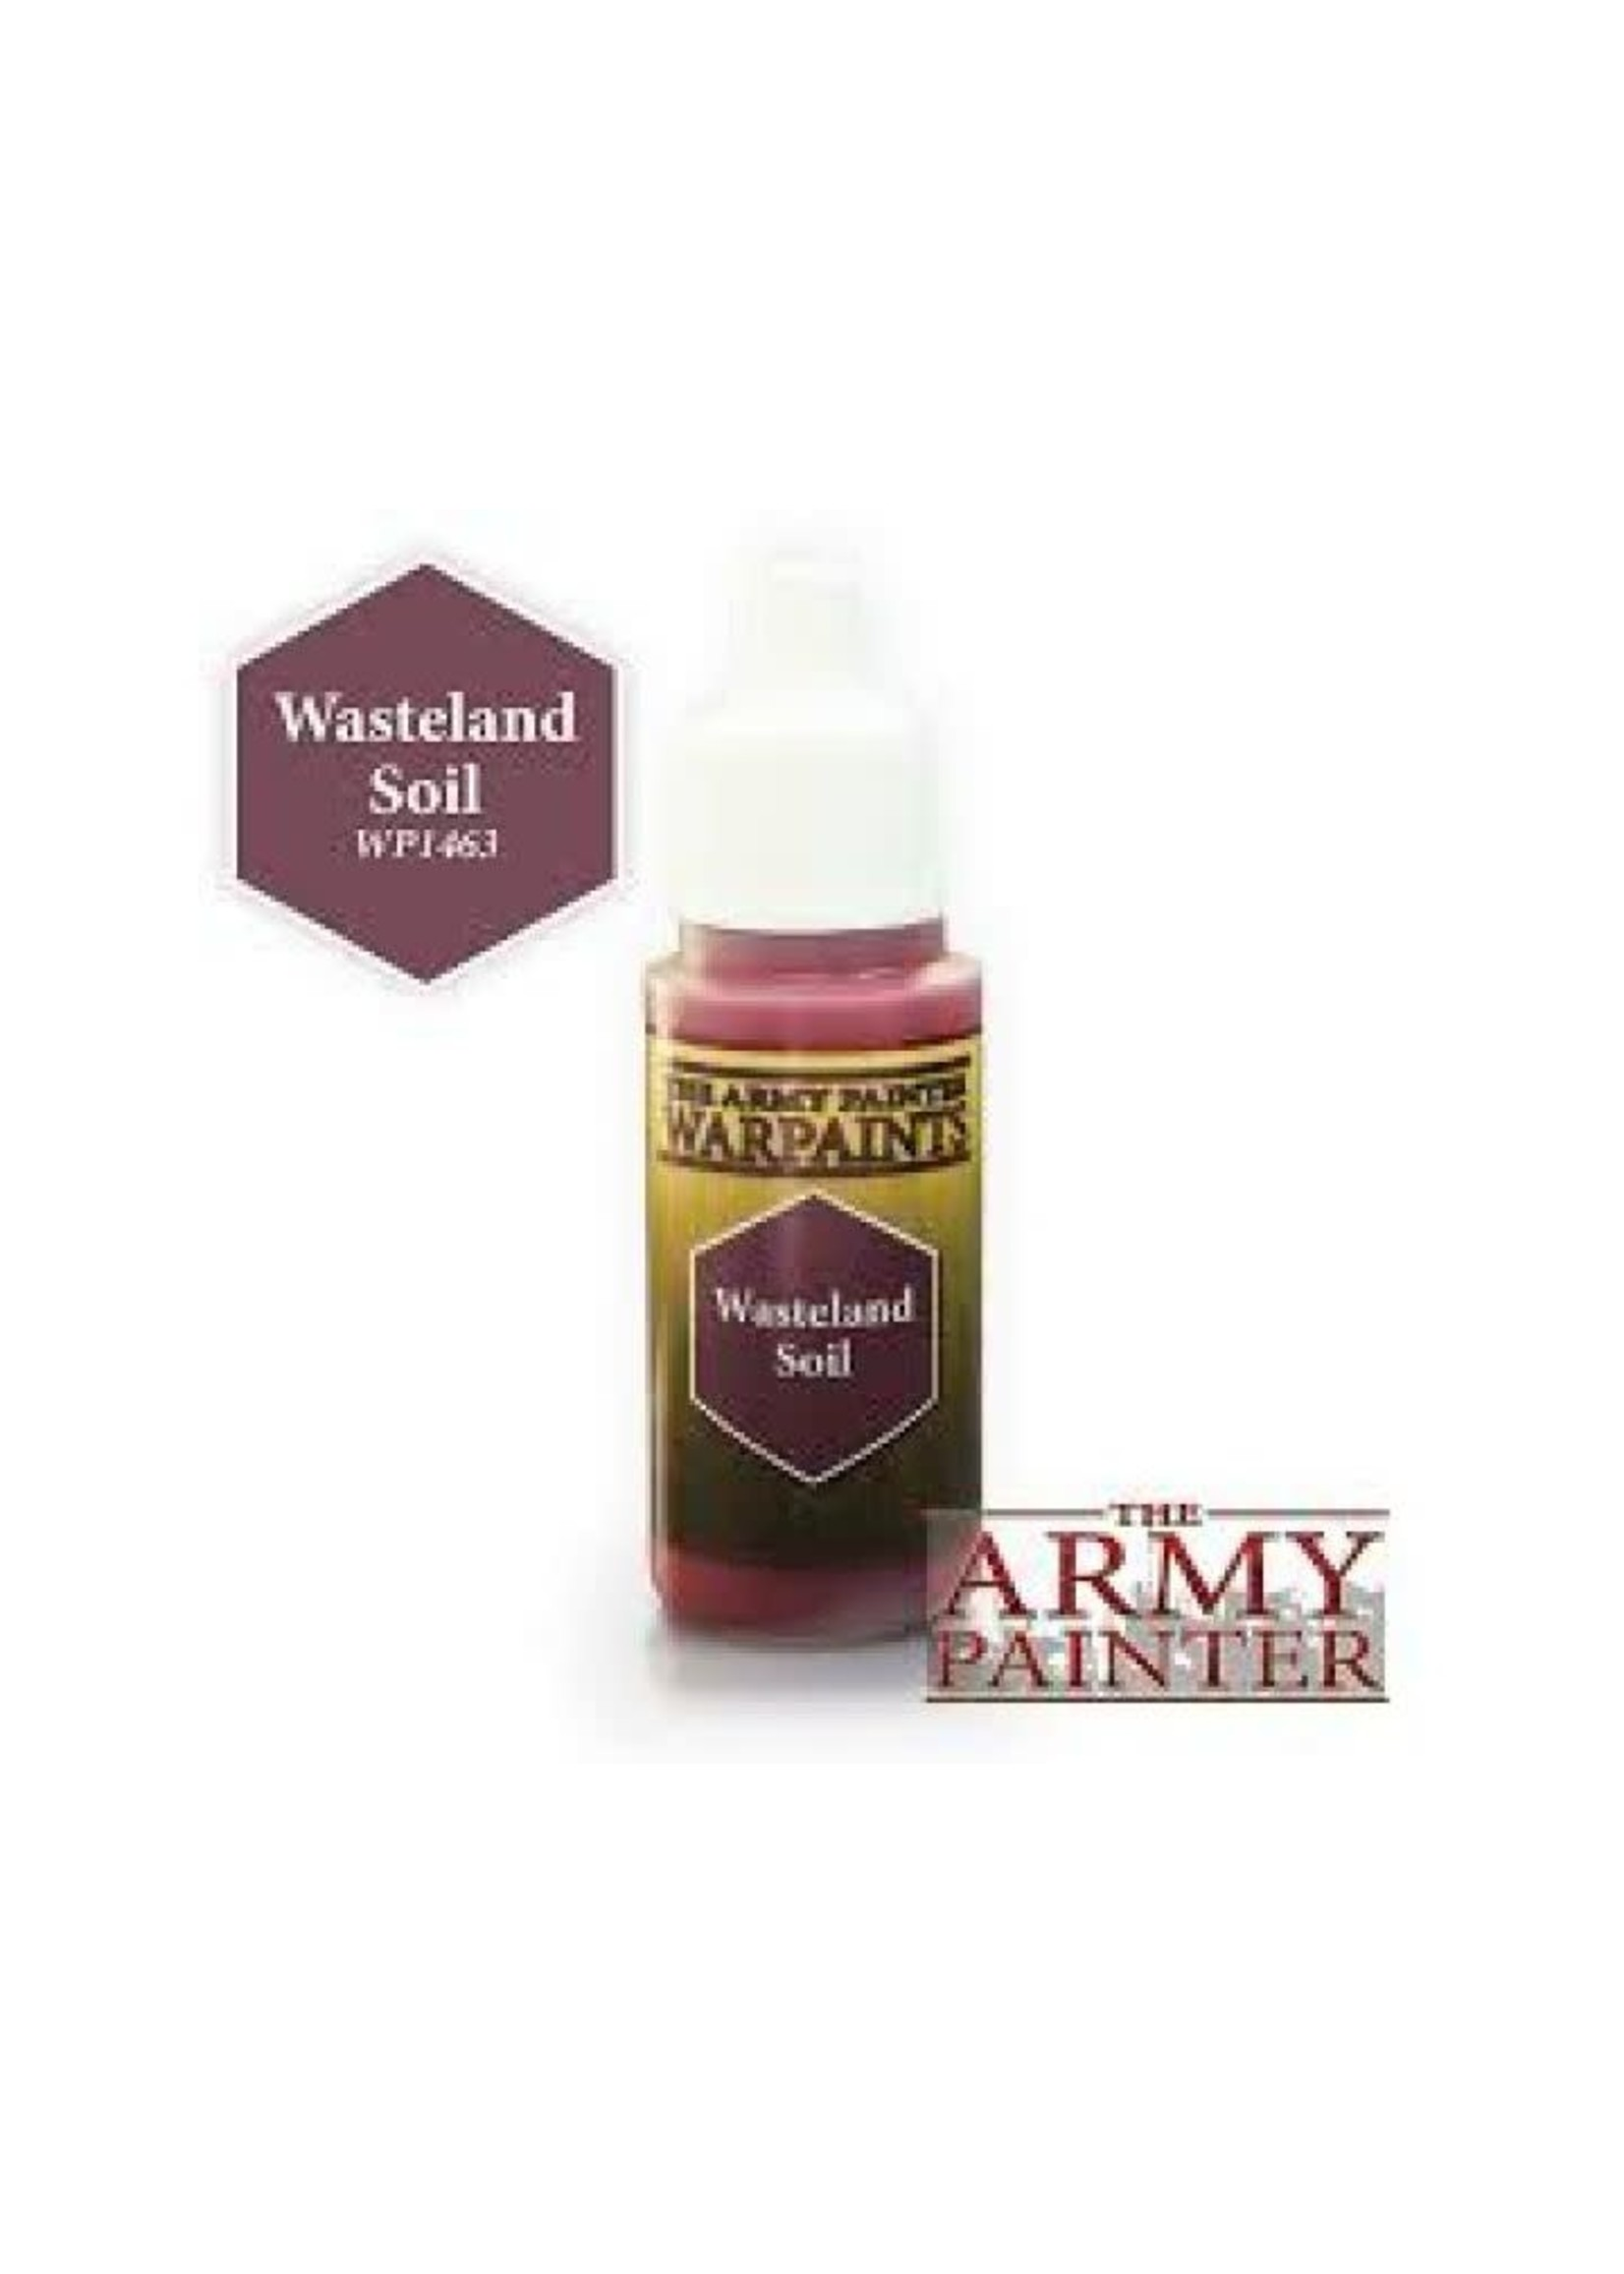 Army Painter Warpaints - Wasteland Soil